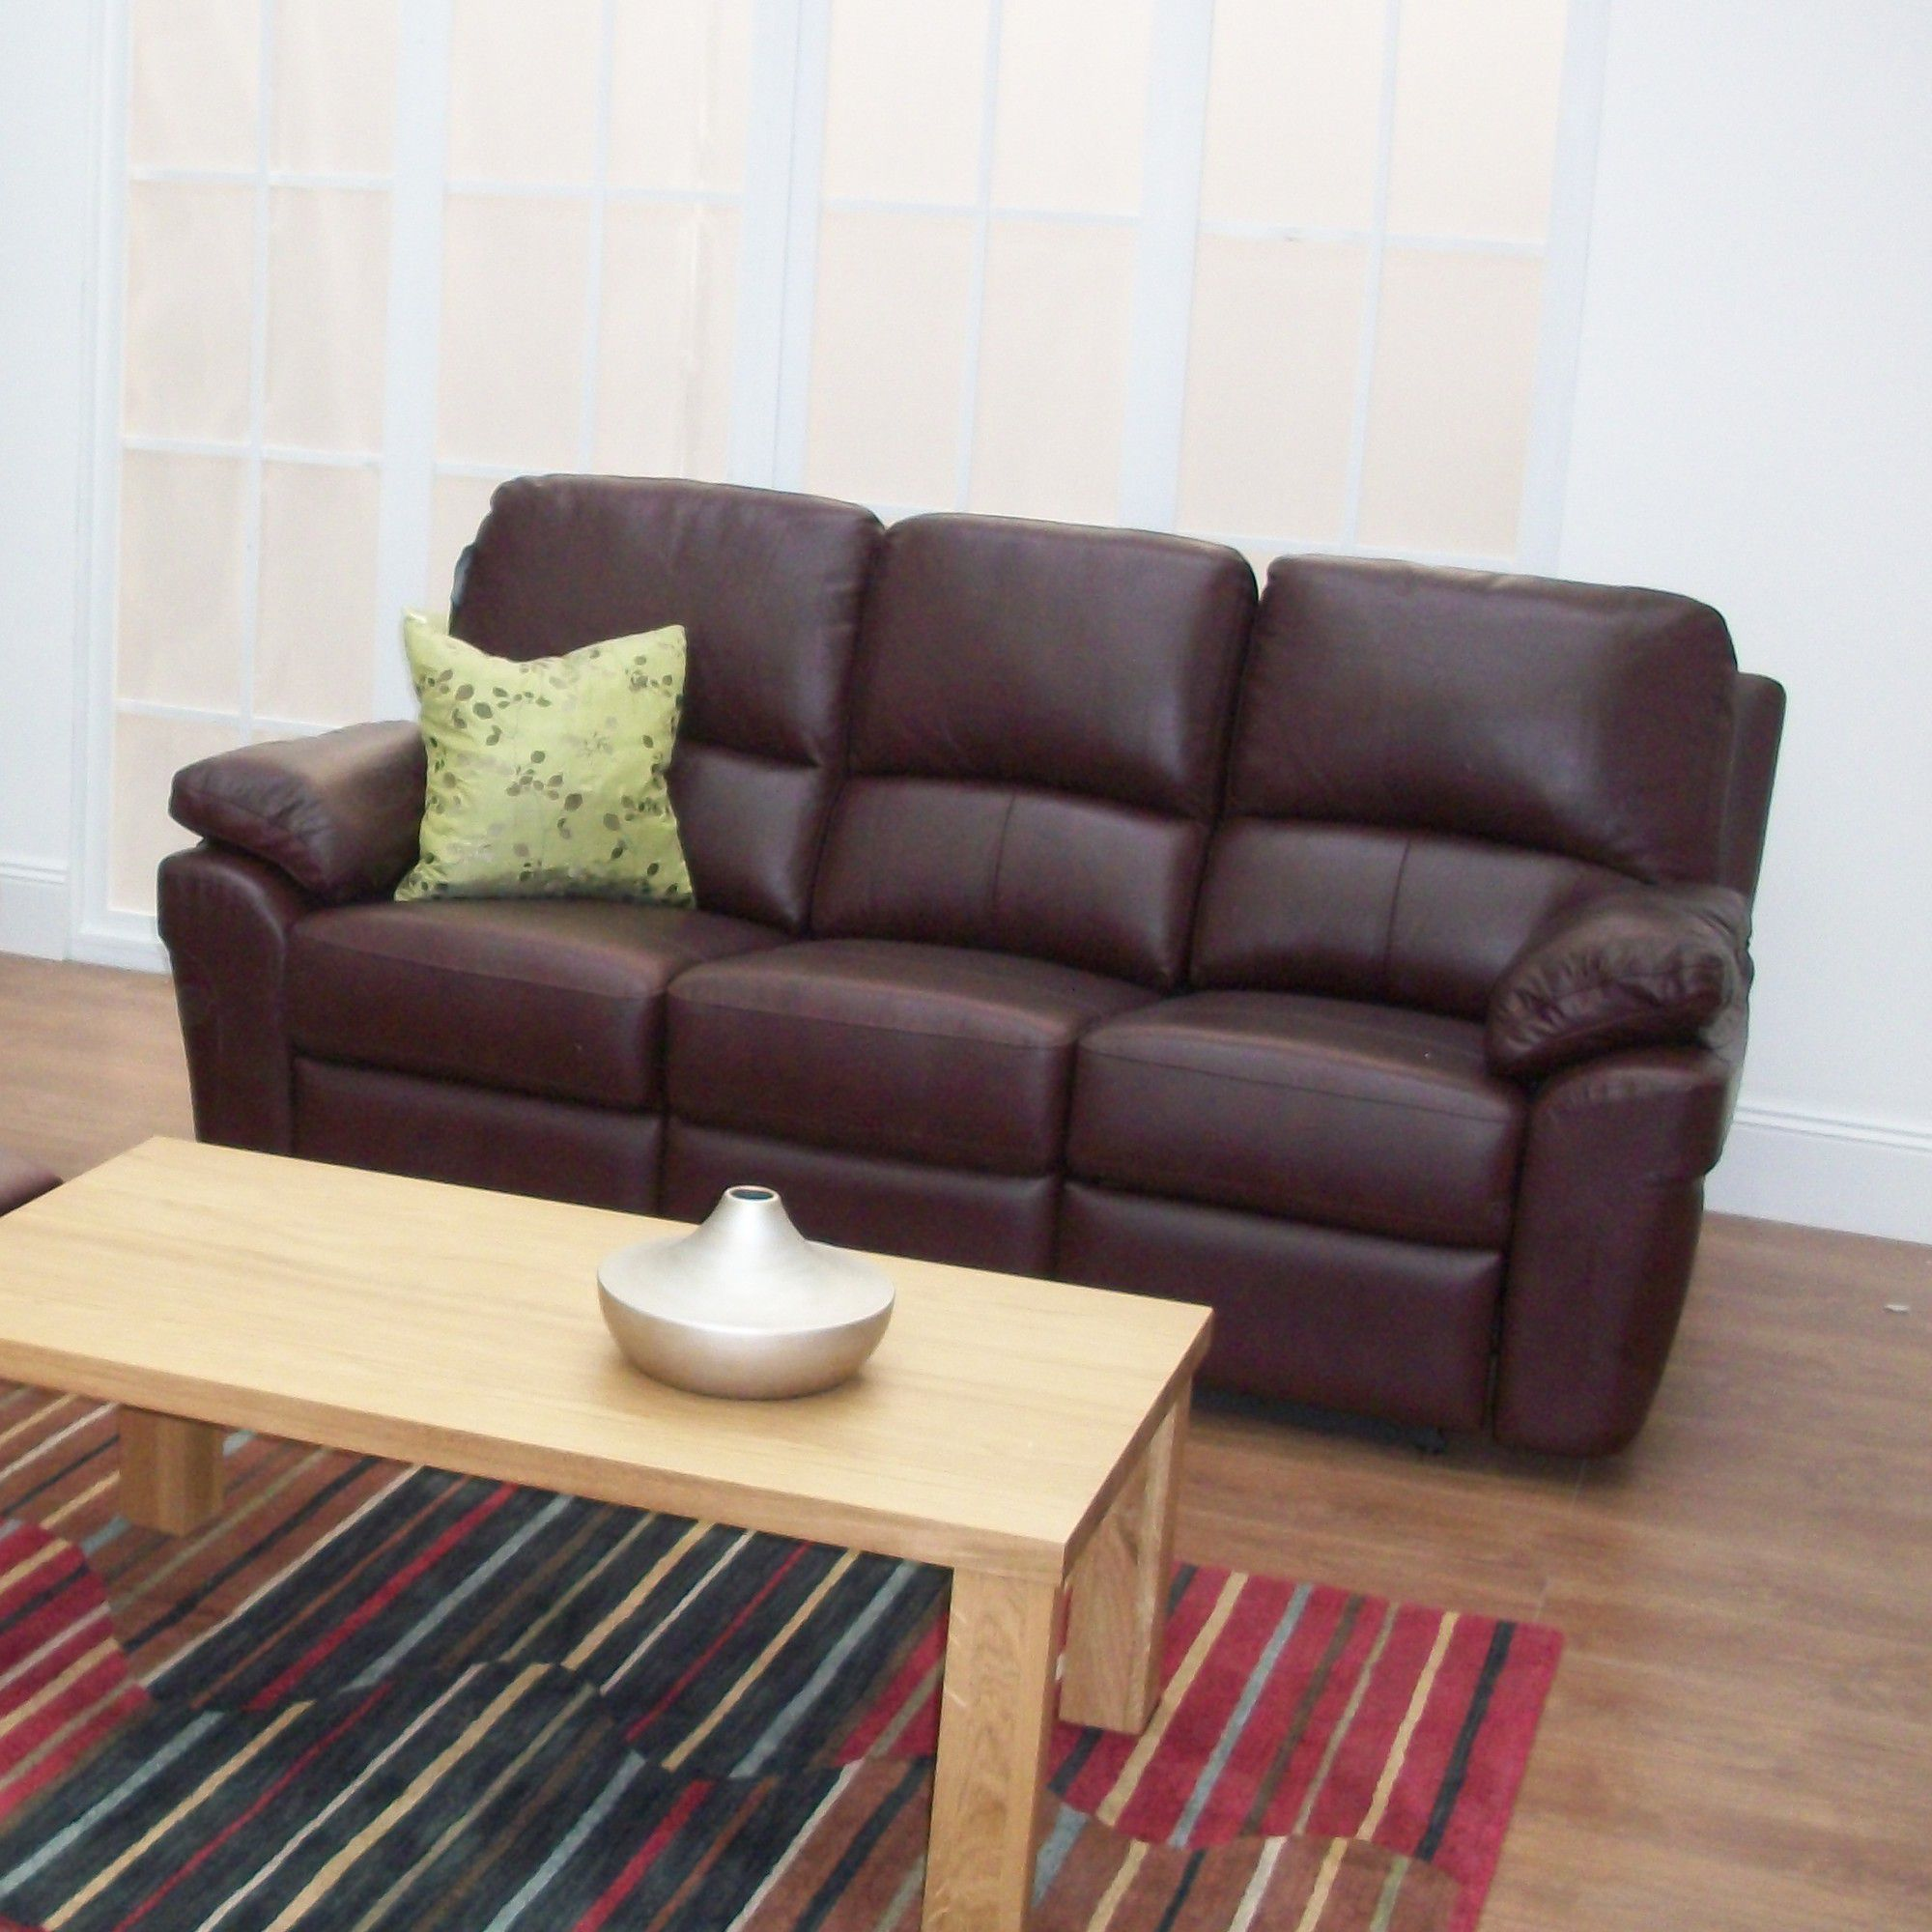 Furniture Link Monzano Three Seat Reclining Sofa in Chestnut - Black at Tesco Direct